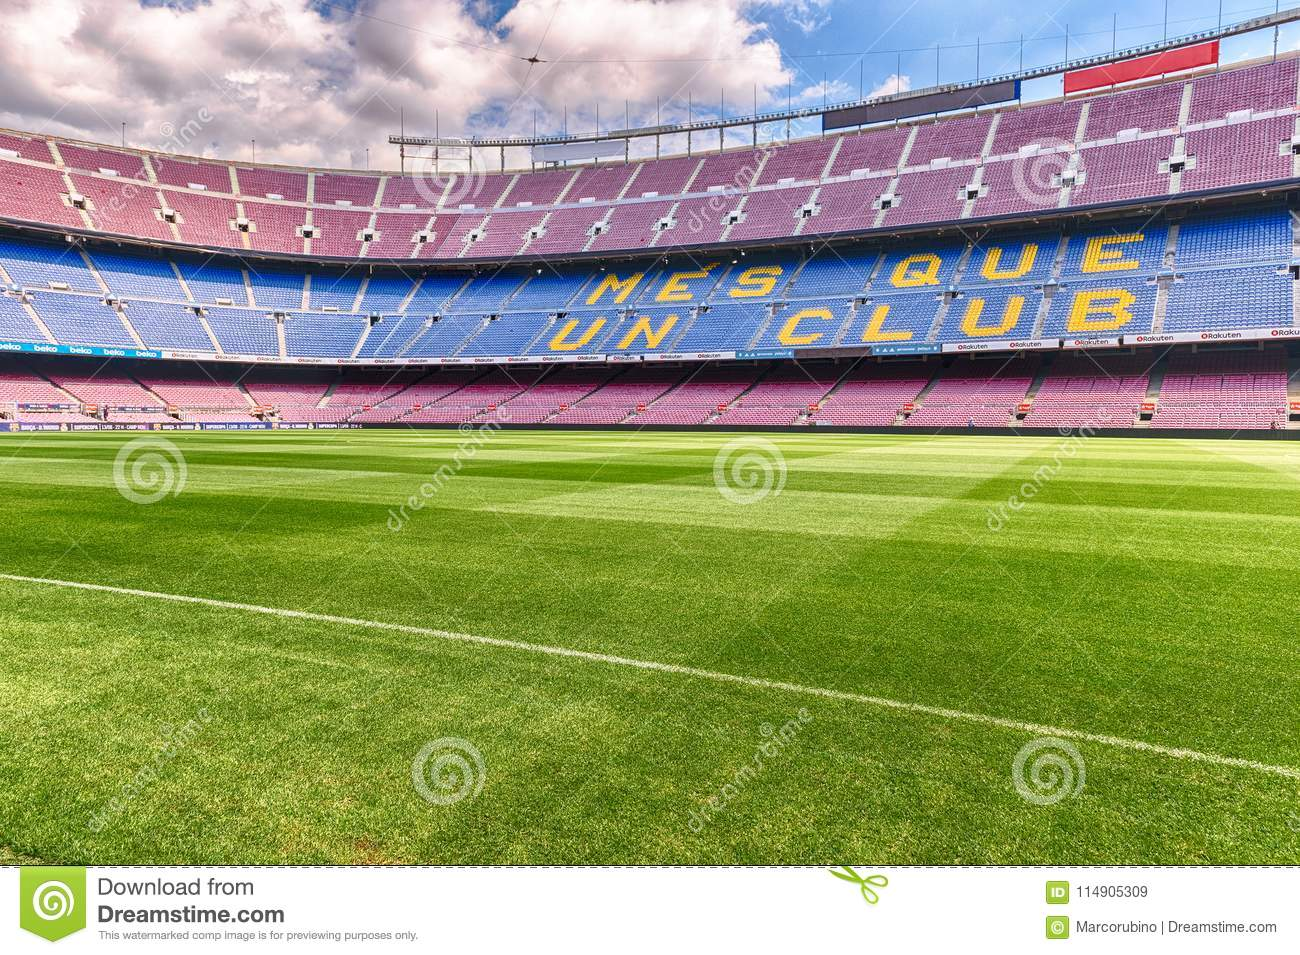 inside camp nou home stadium of fc barcelona catalonia spain editorial stock image image of people spanish 114905309 https www dreamstime com barcelona august interior view camp nou stadium home football club catalonia spain seating capacity largest image114905309